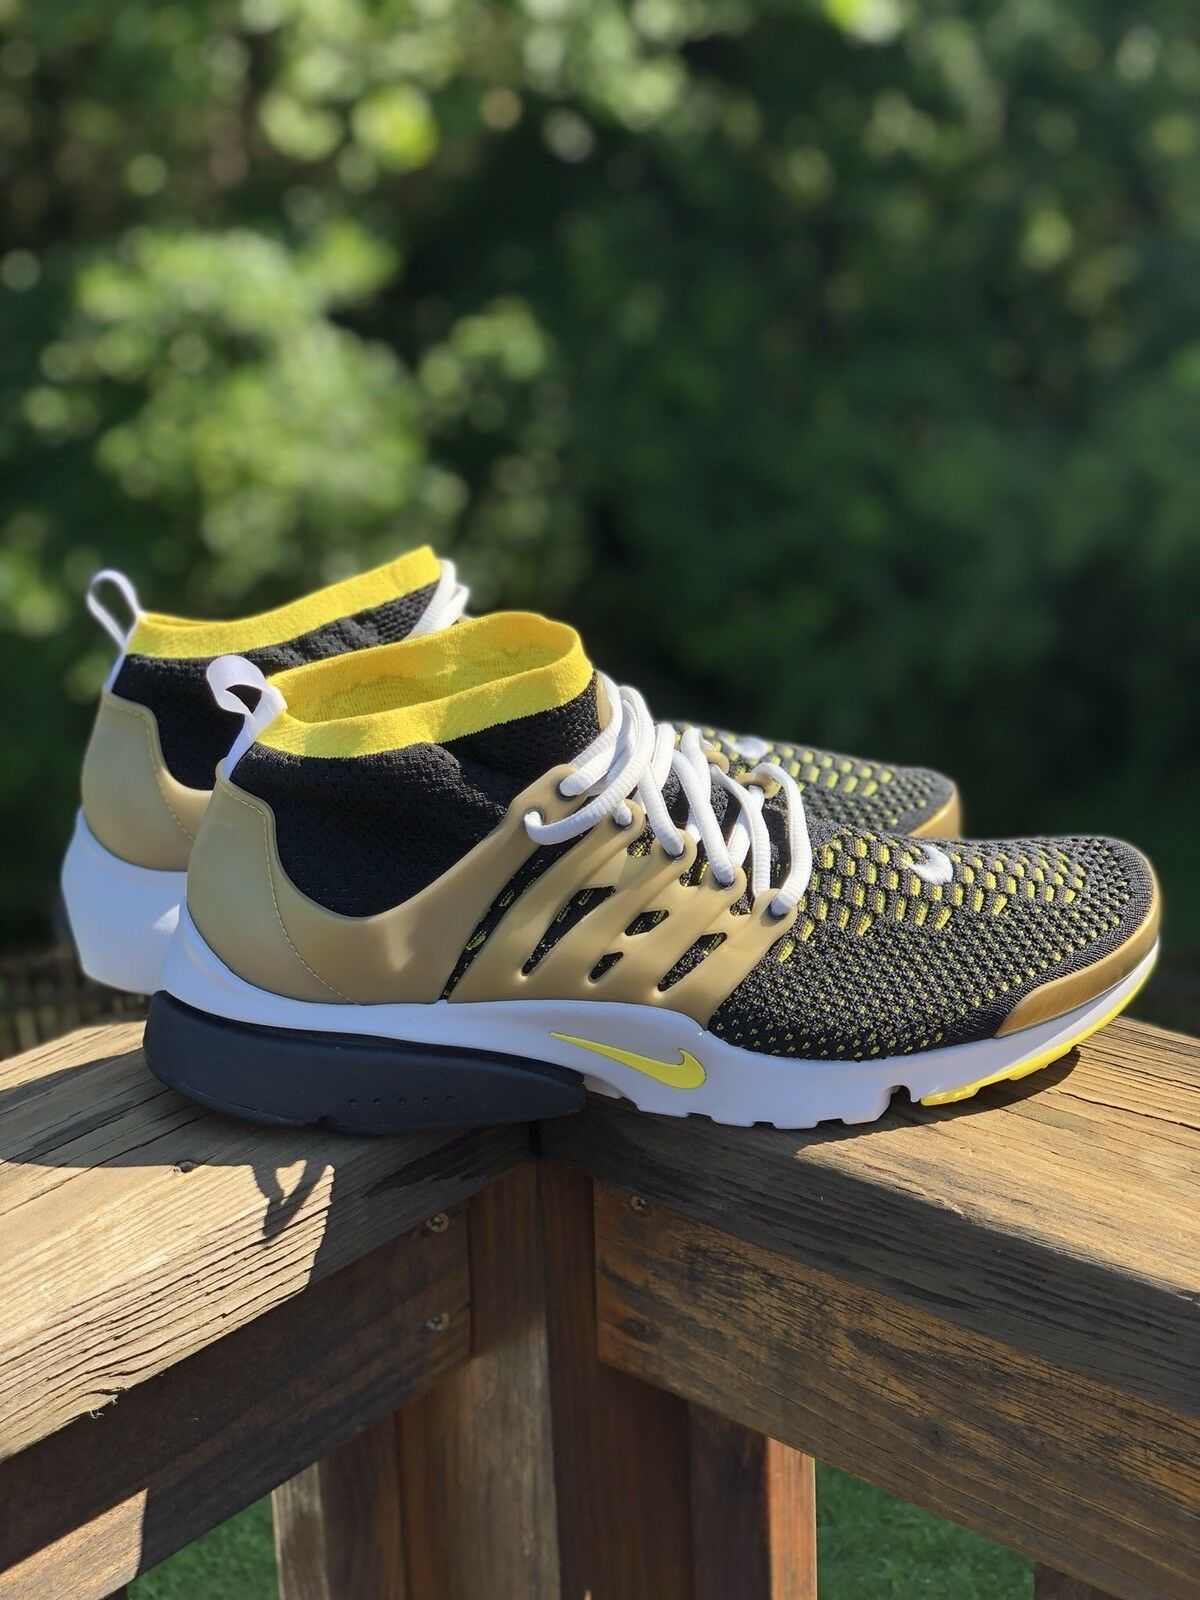 Nike Air Presto Flyknit Ultra Black Yellow Gold Men's 835570-007 Comfortable The most popular shoes for men and women